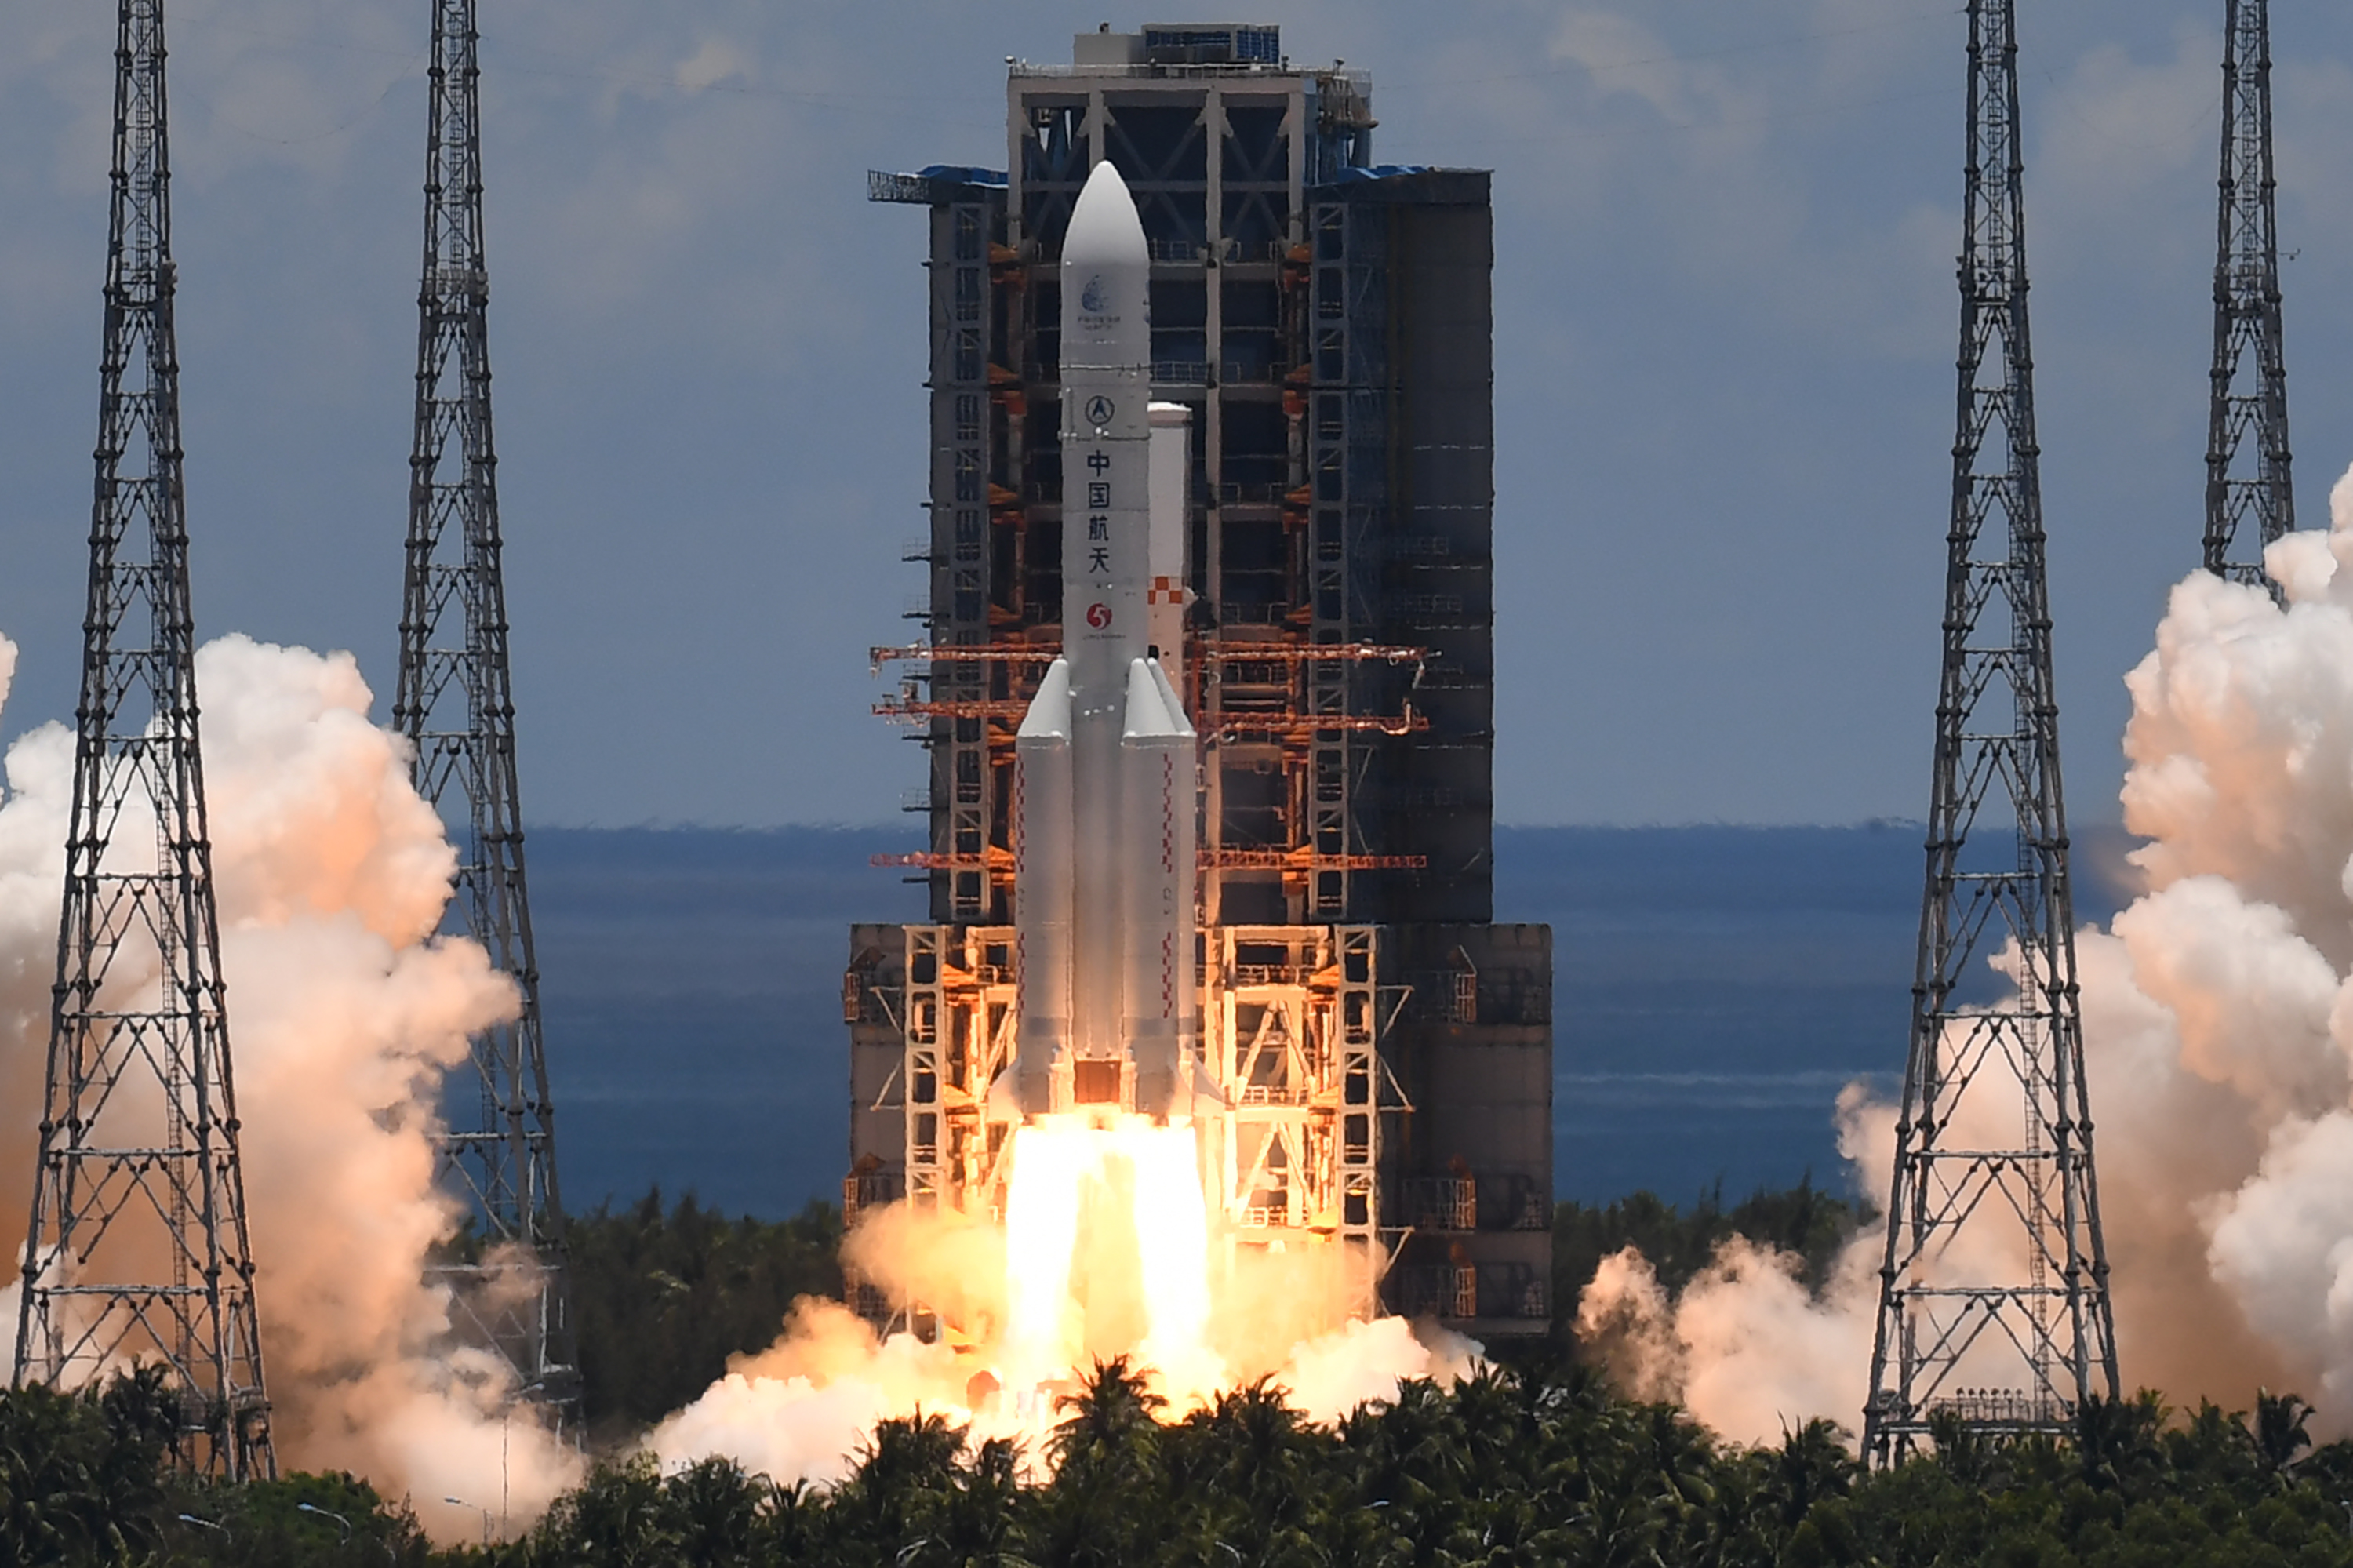 A Long March-5 rocket, carrying an orbiter, lander and rover as part of the Tianwen-1 mission to Mars, lifts off from the Wenchang Space Launch Centre in southern China's Hainan Province on July 23, 2020. (Photo: Noel Celis/AFP via Getty Images)